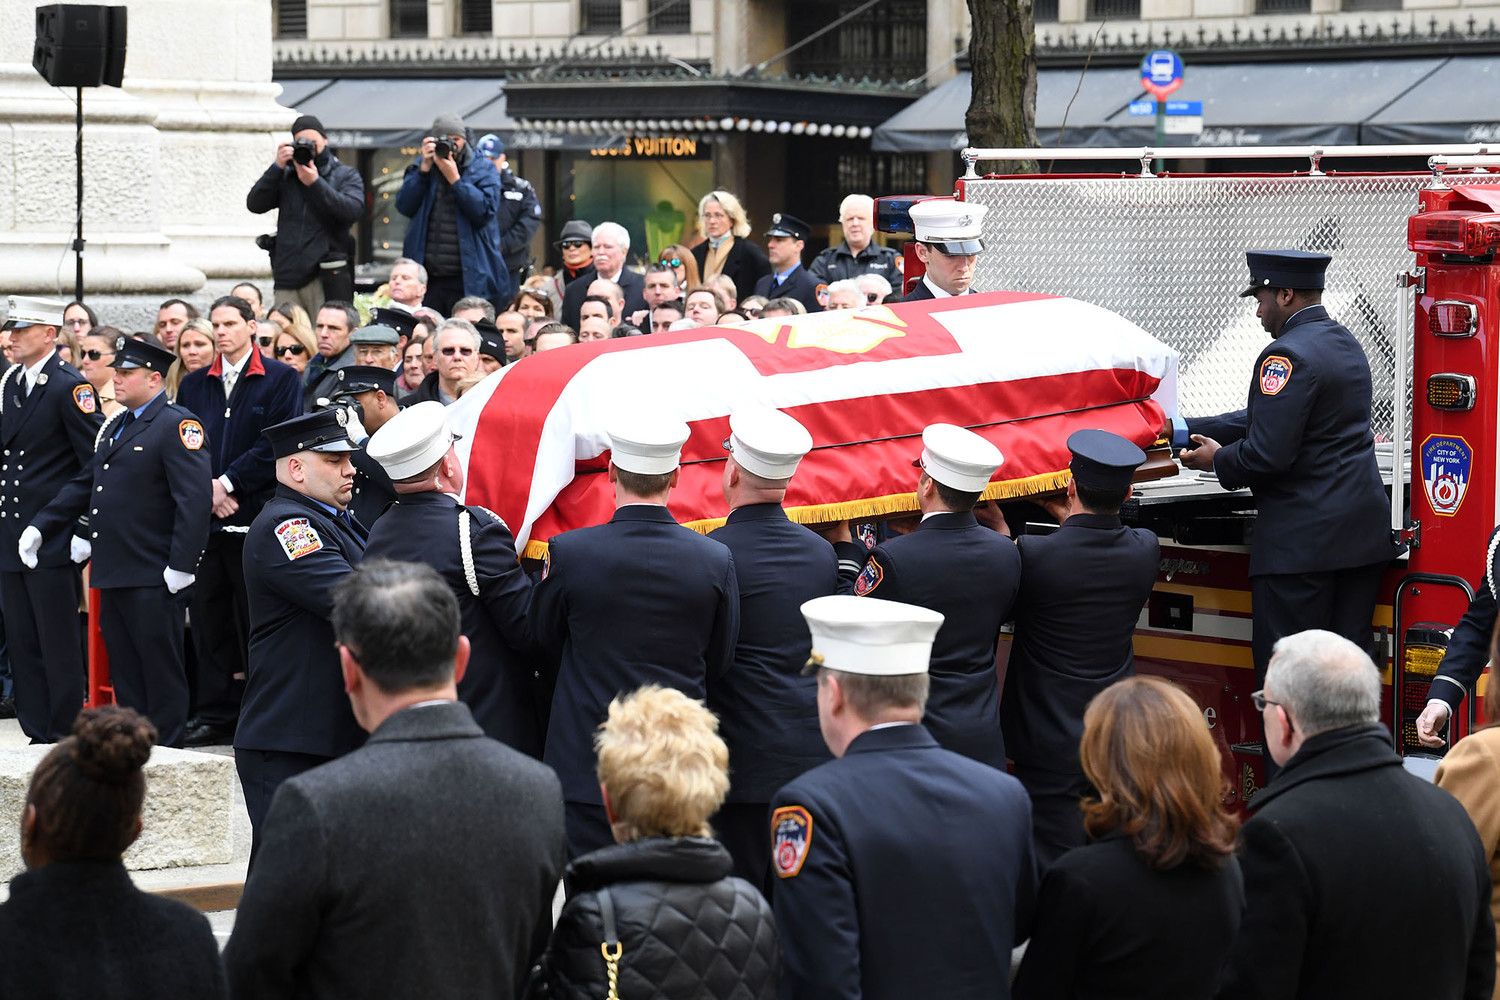 The casket of FDNY Lt. Michael R. Davidson, of Engine Company 69 in Manhattan, is lowered from a fire truck and released to pallbearers before the Funeral Mass Cardinal Dolan celebrated March 27 at St. Patrick's Cathedral.